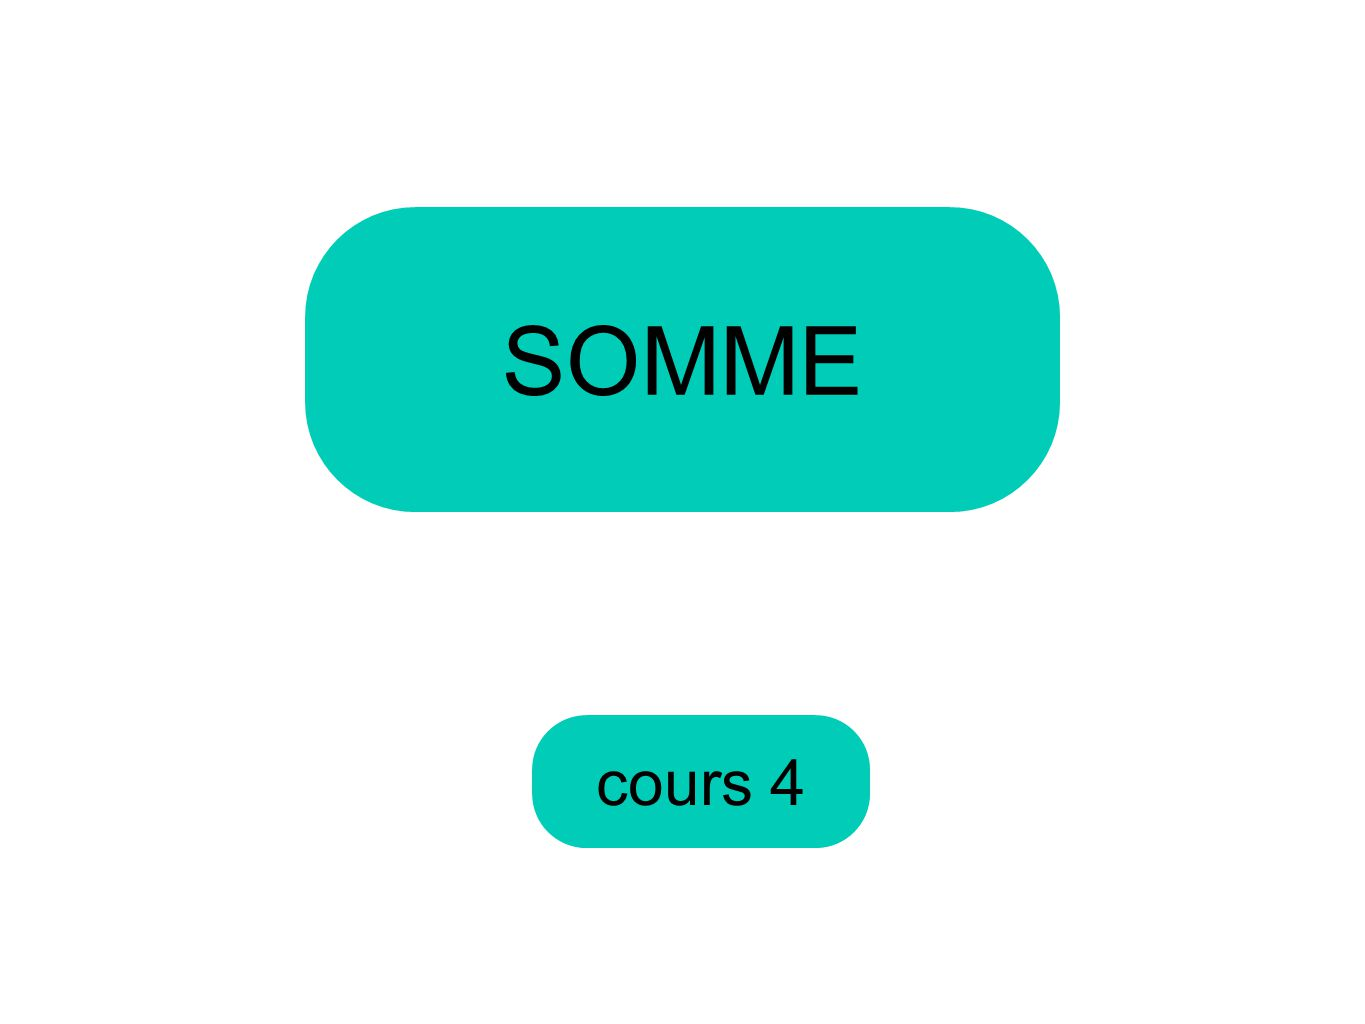 cours 4 SOMME